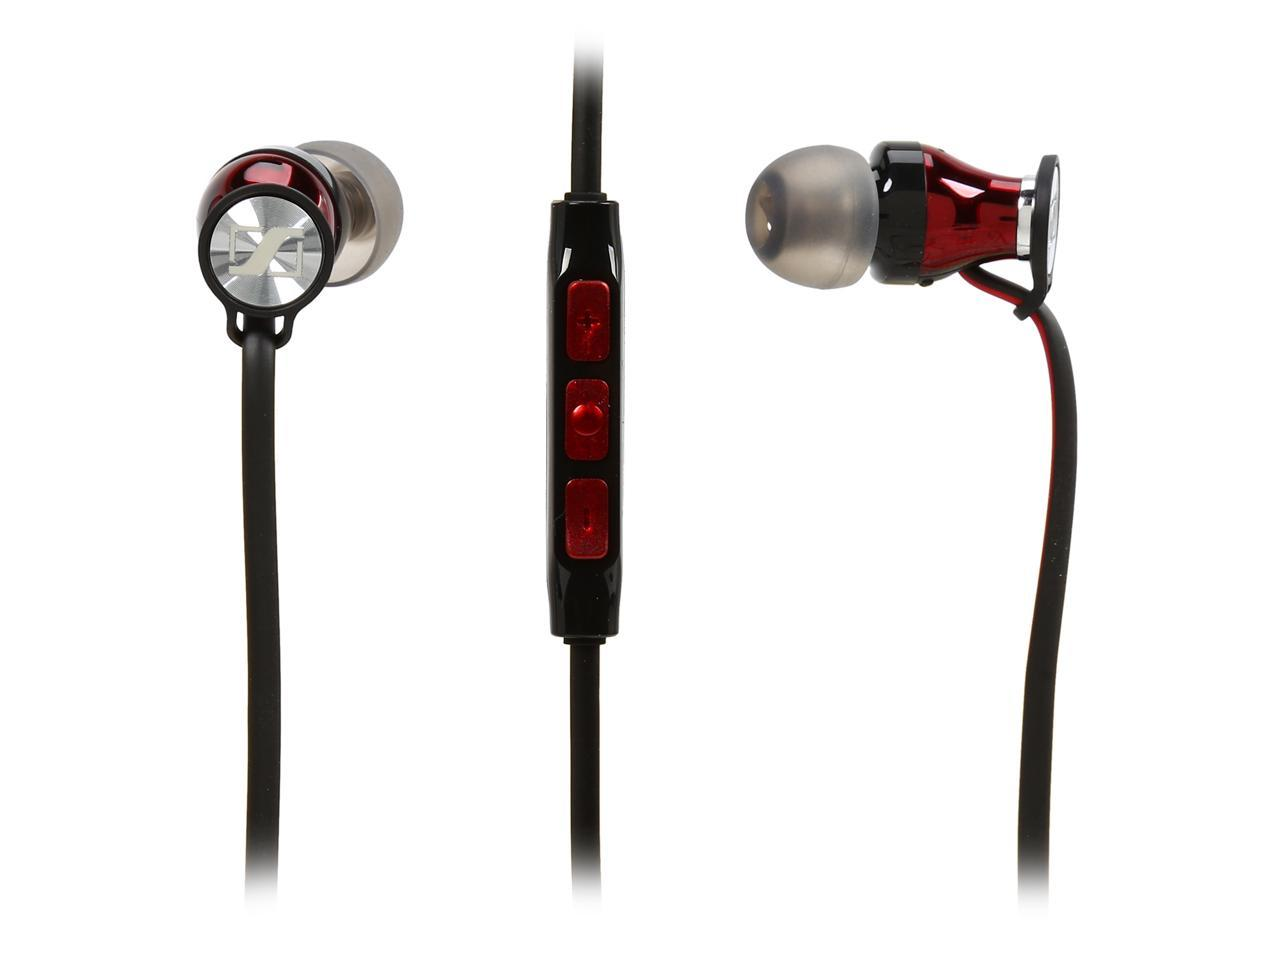 Sennheiser M2IEI Momentum In-Ear Headphones for iOS Devices (Black/Red)